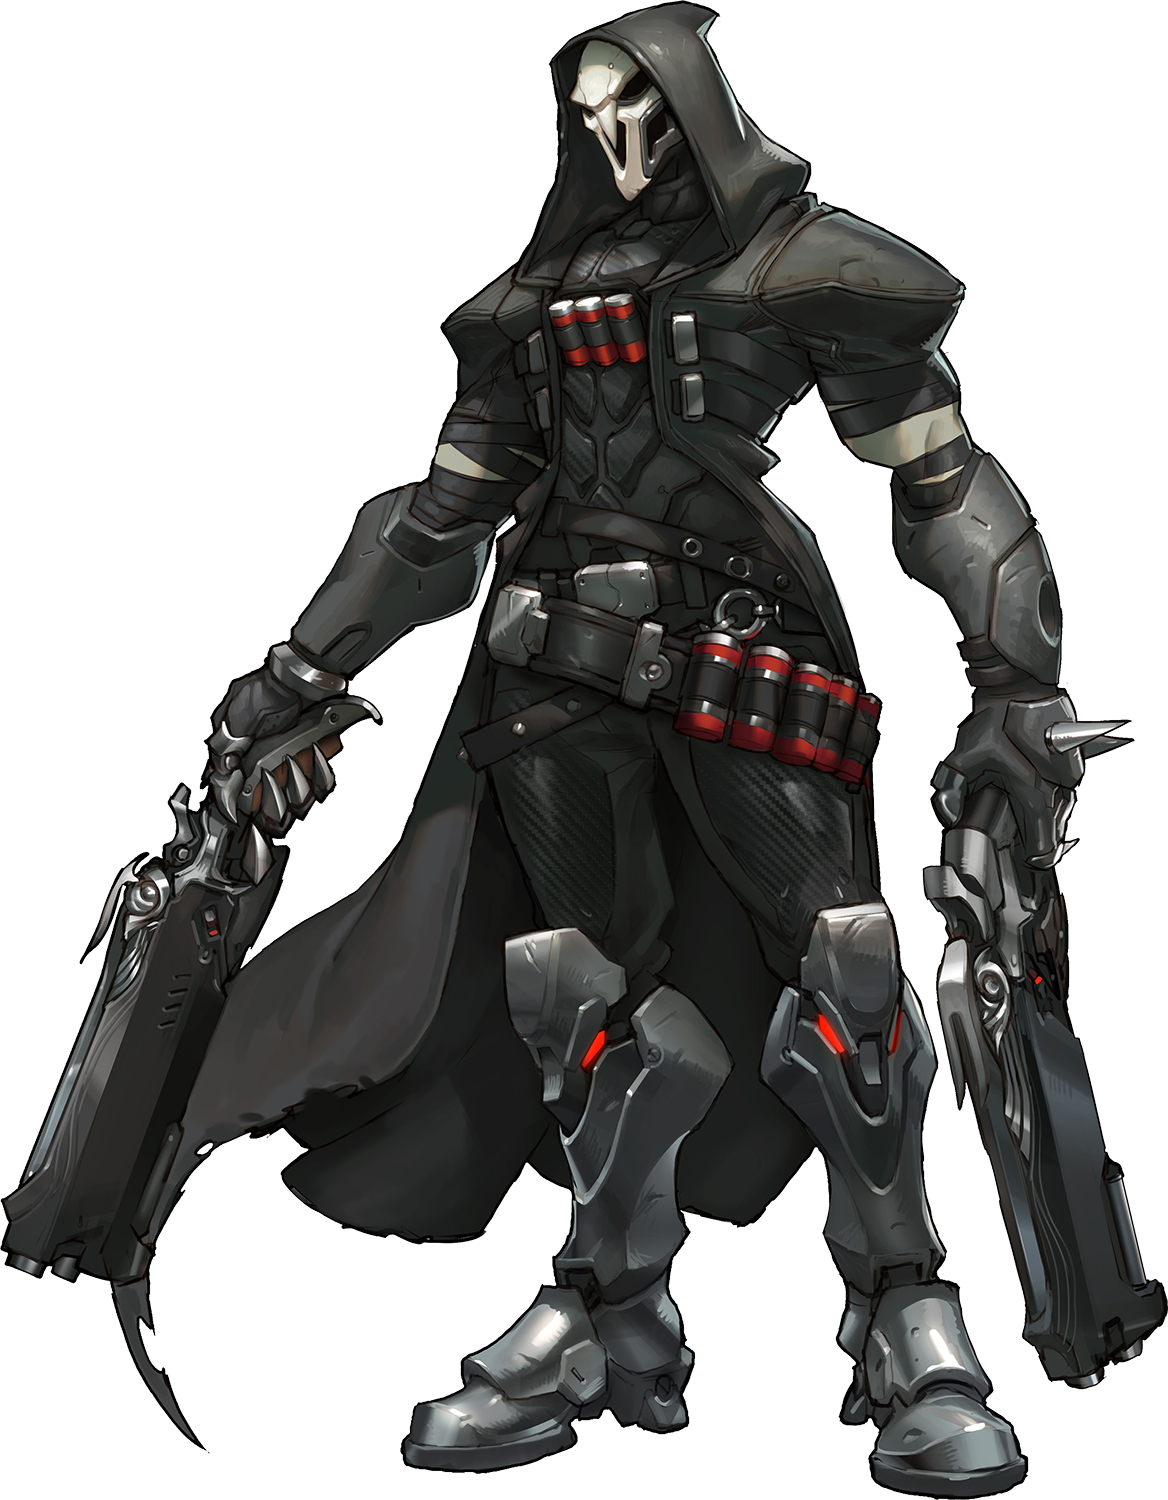 Image universe of smash. Reaper overwatch png